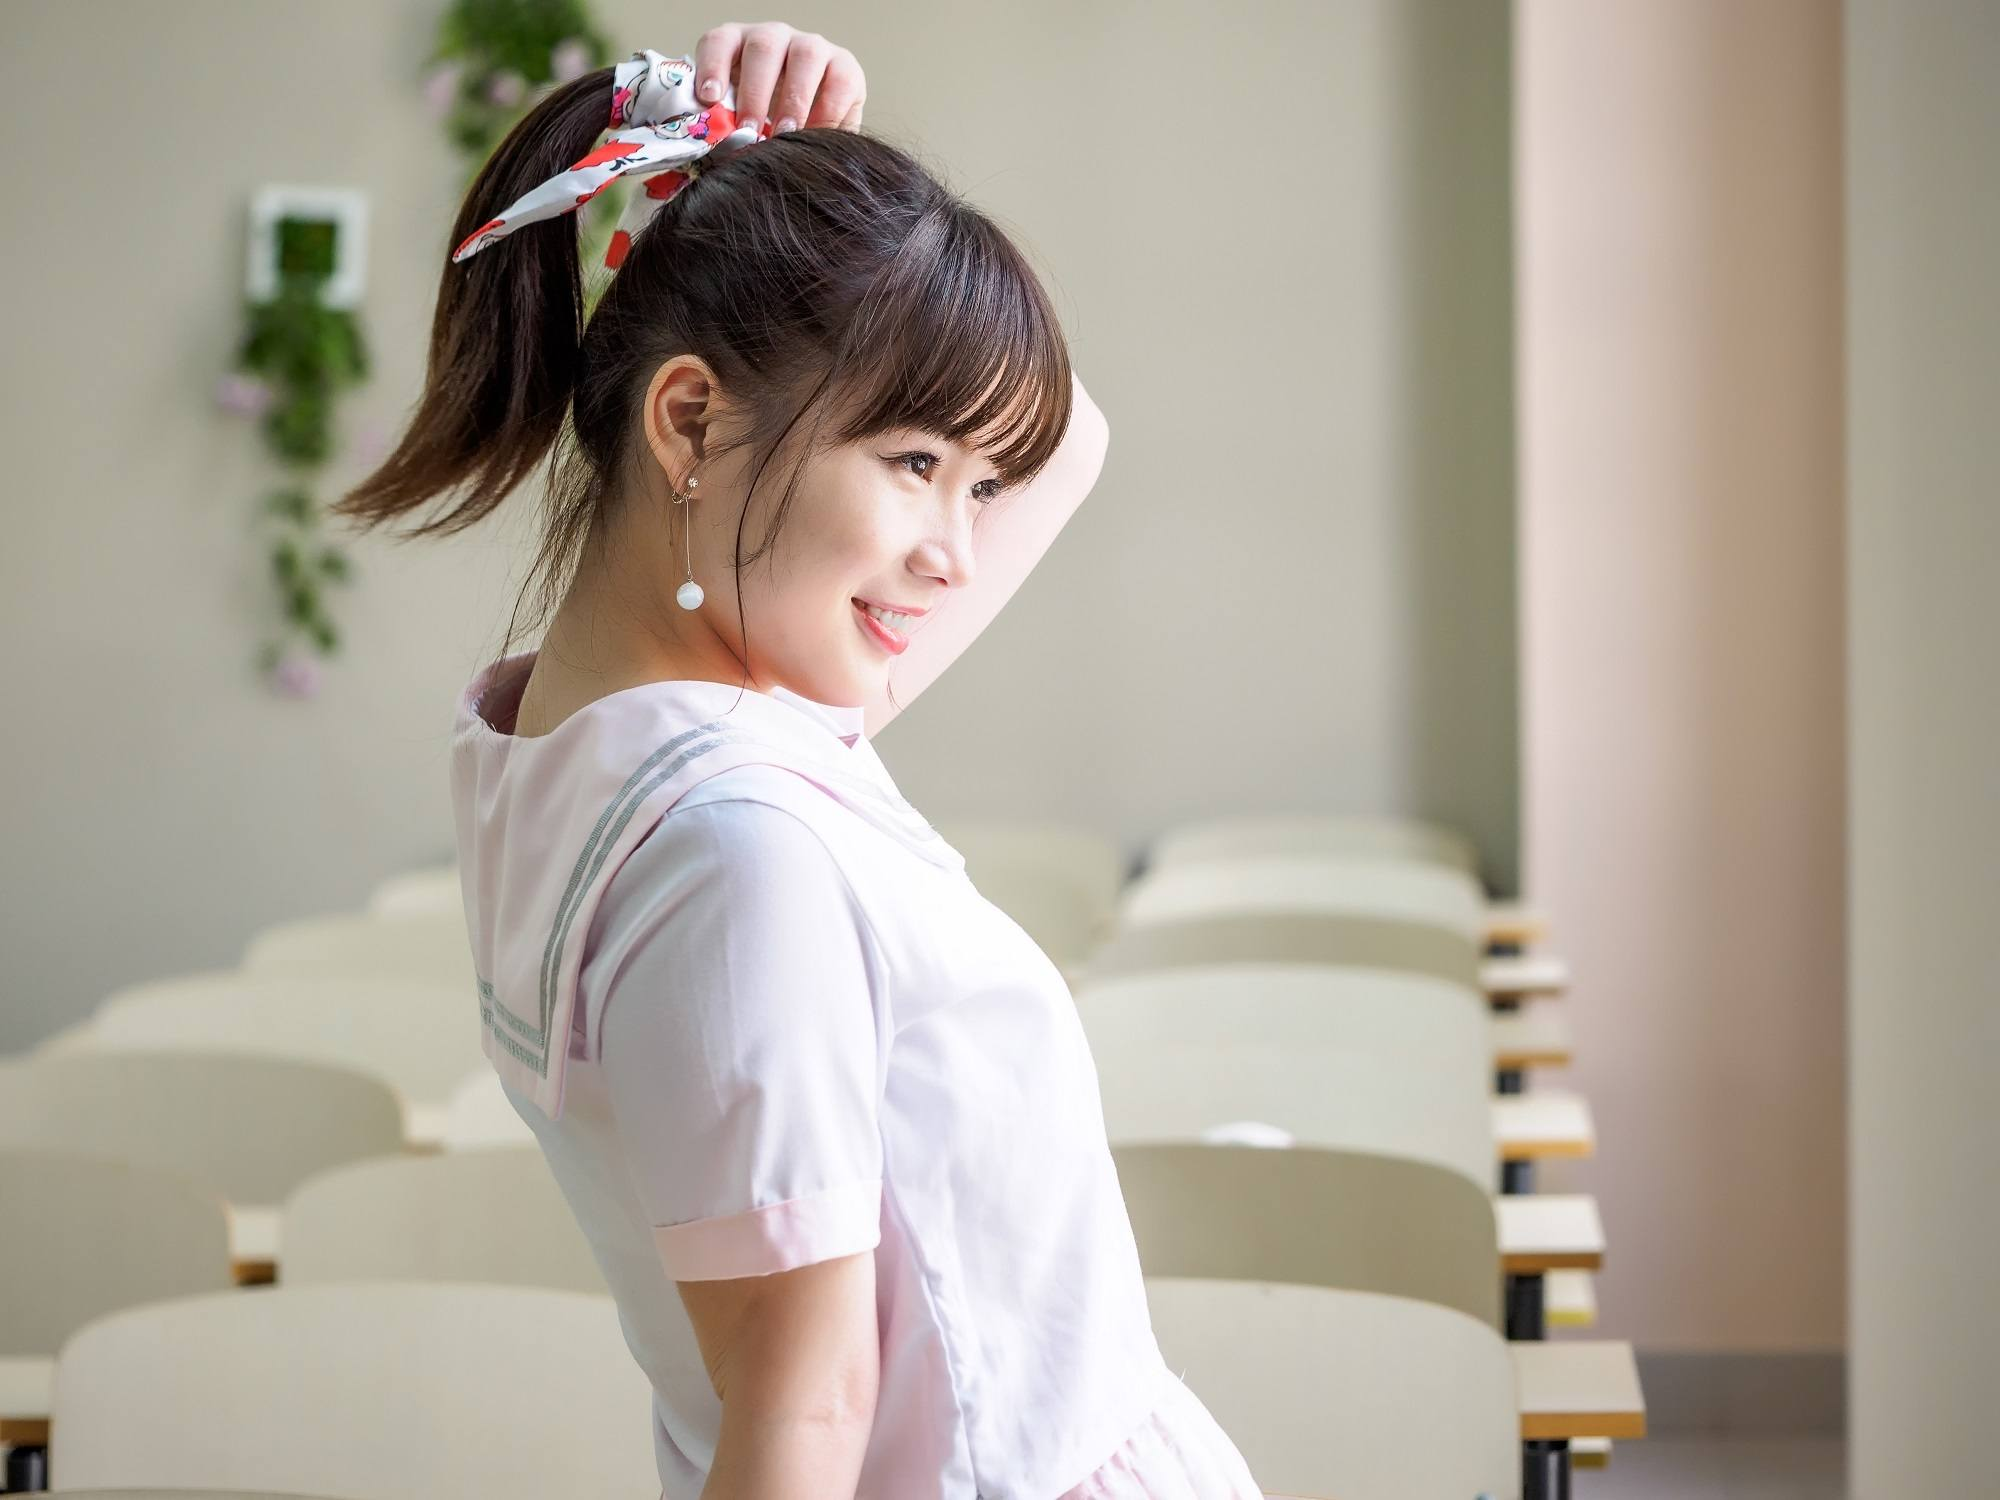 Ponytail with bangs: Asian girl with high ponytail and see-through bangs